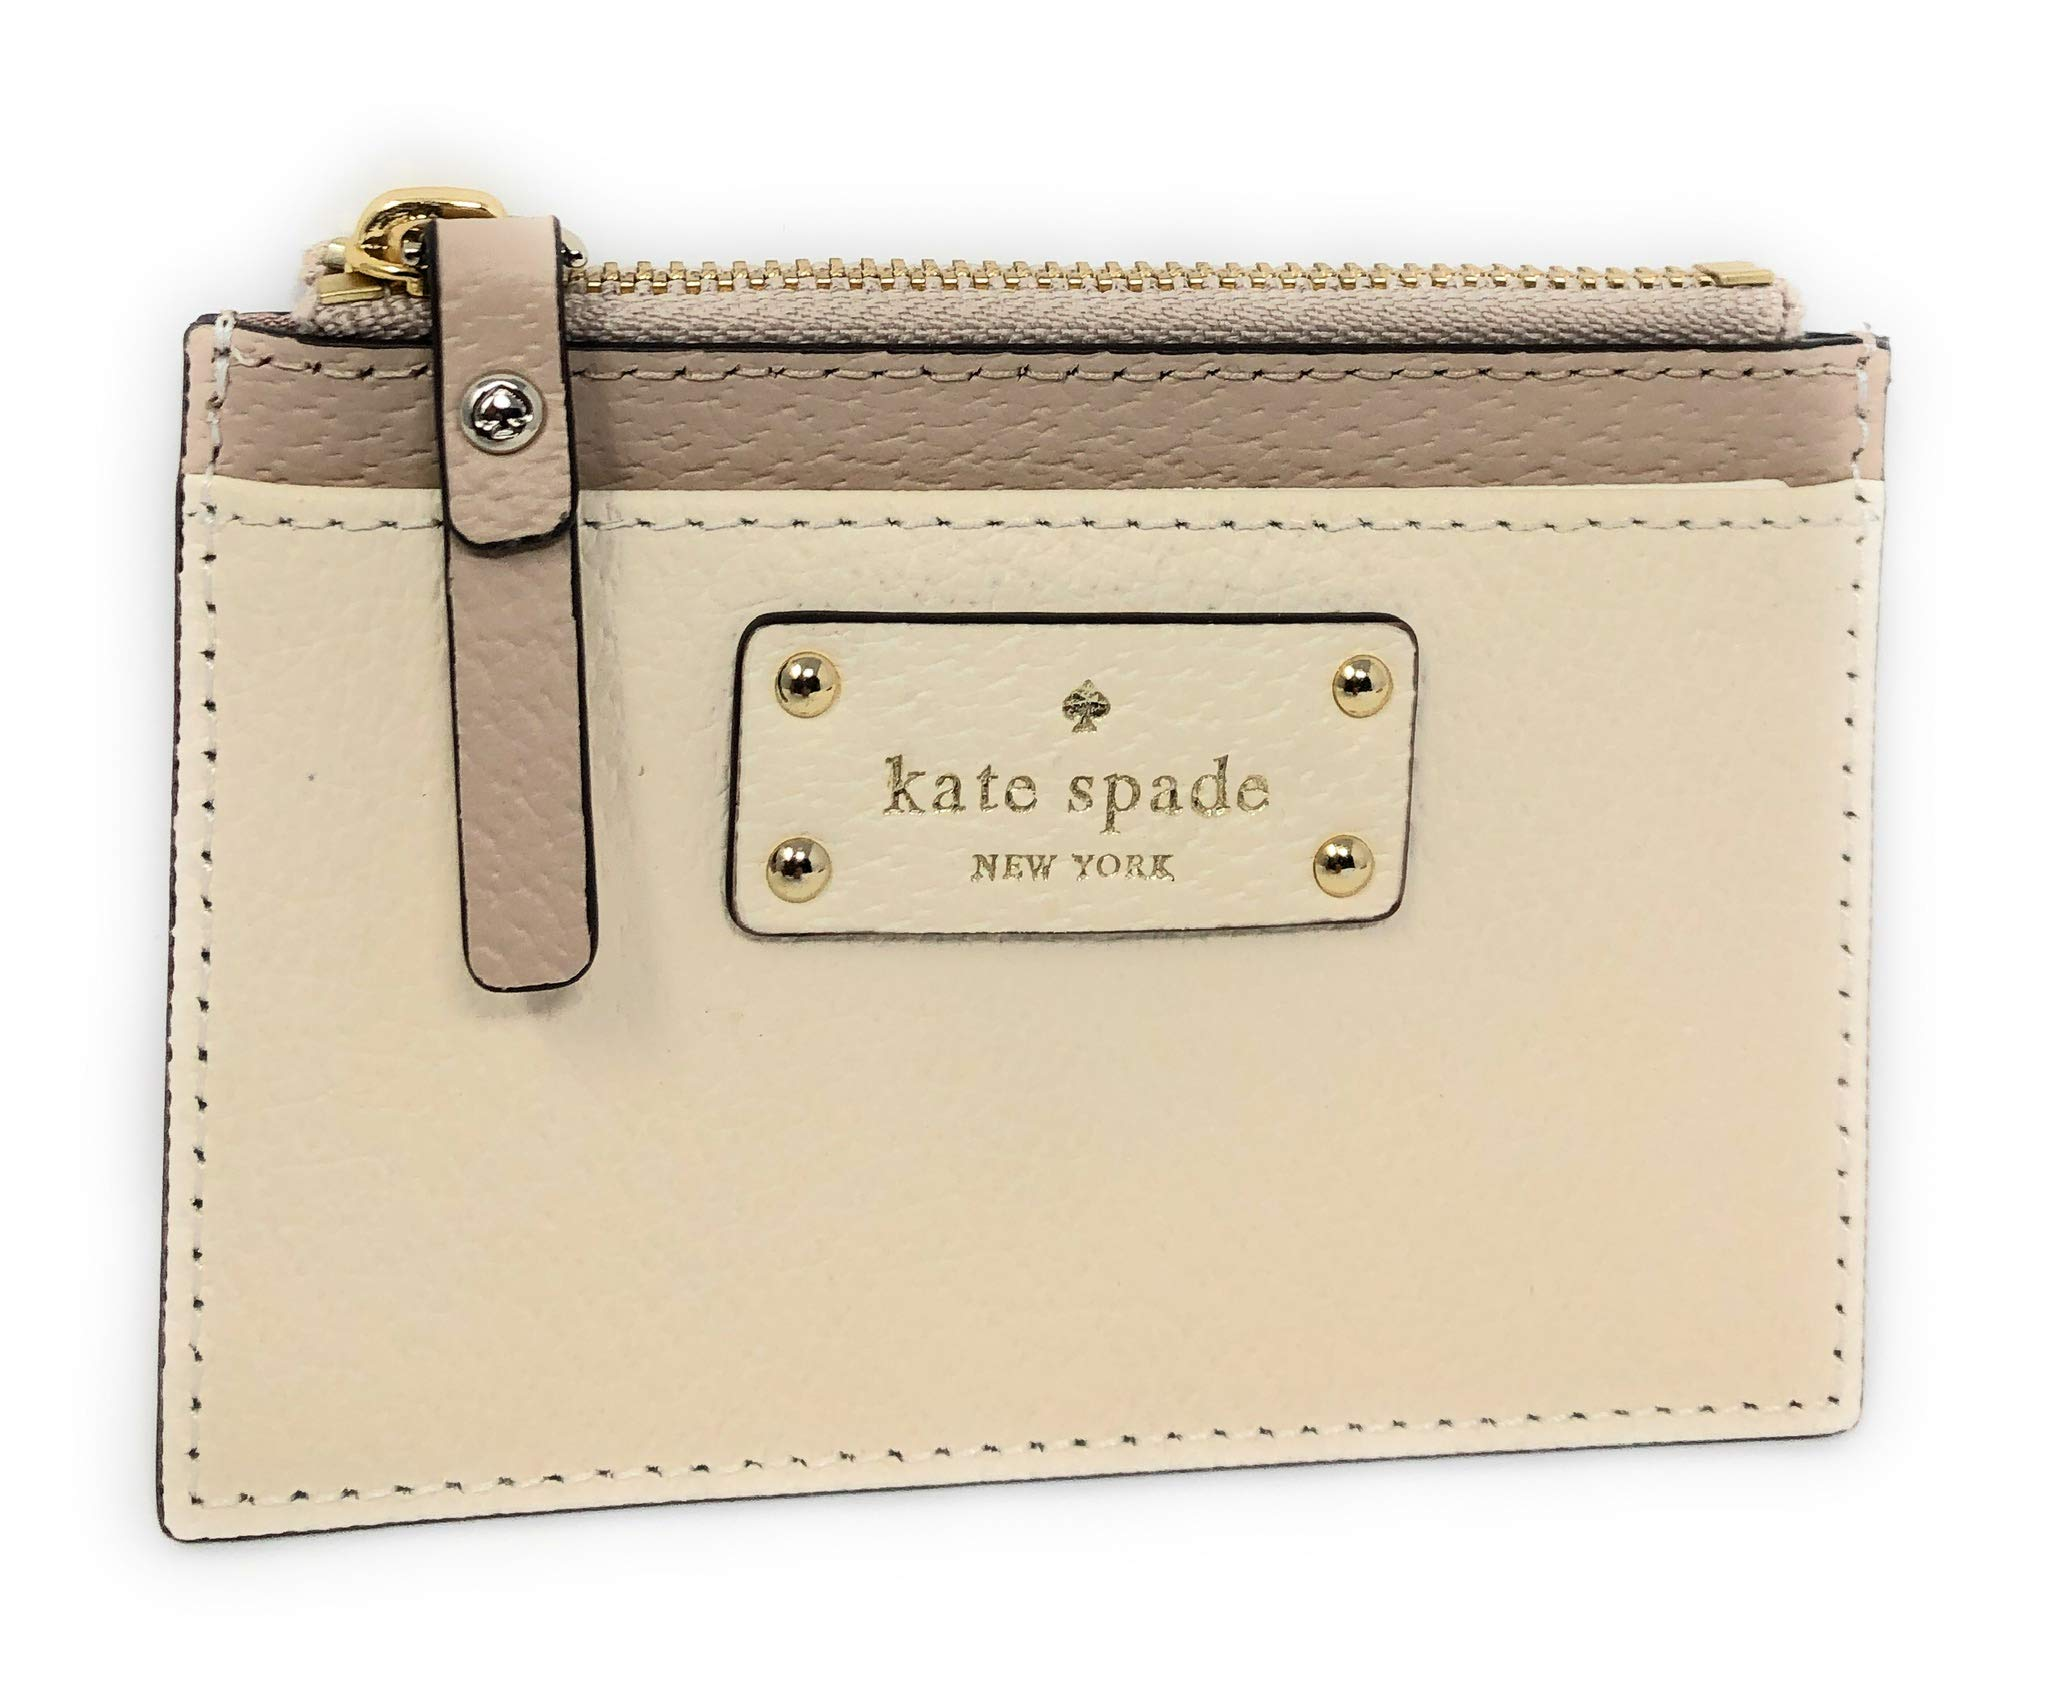 Kate Spade Adi Two Tone Leather ID Card Case Coin Purse, Warm Beige/Cement by Kate Spade New York